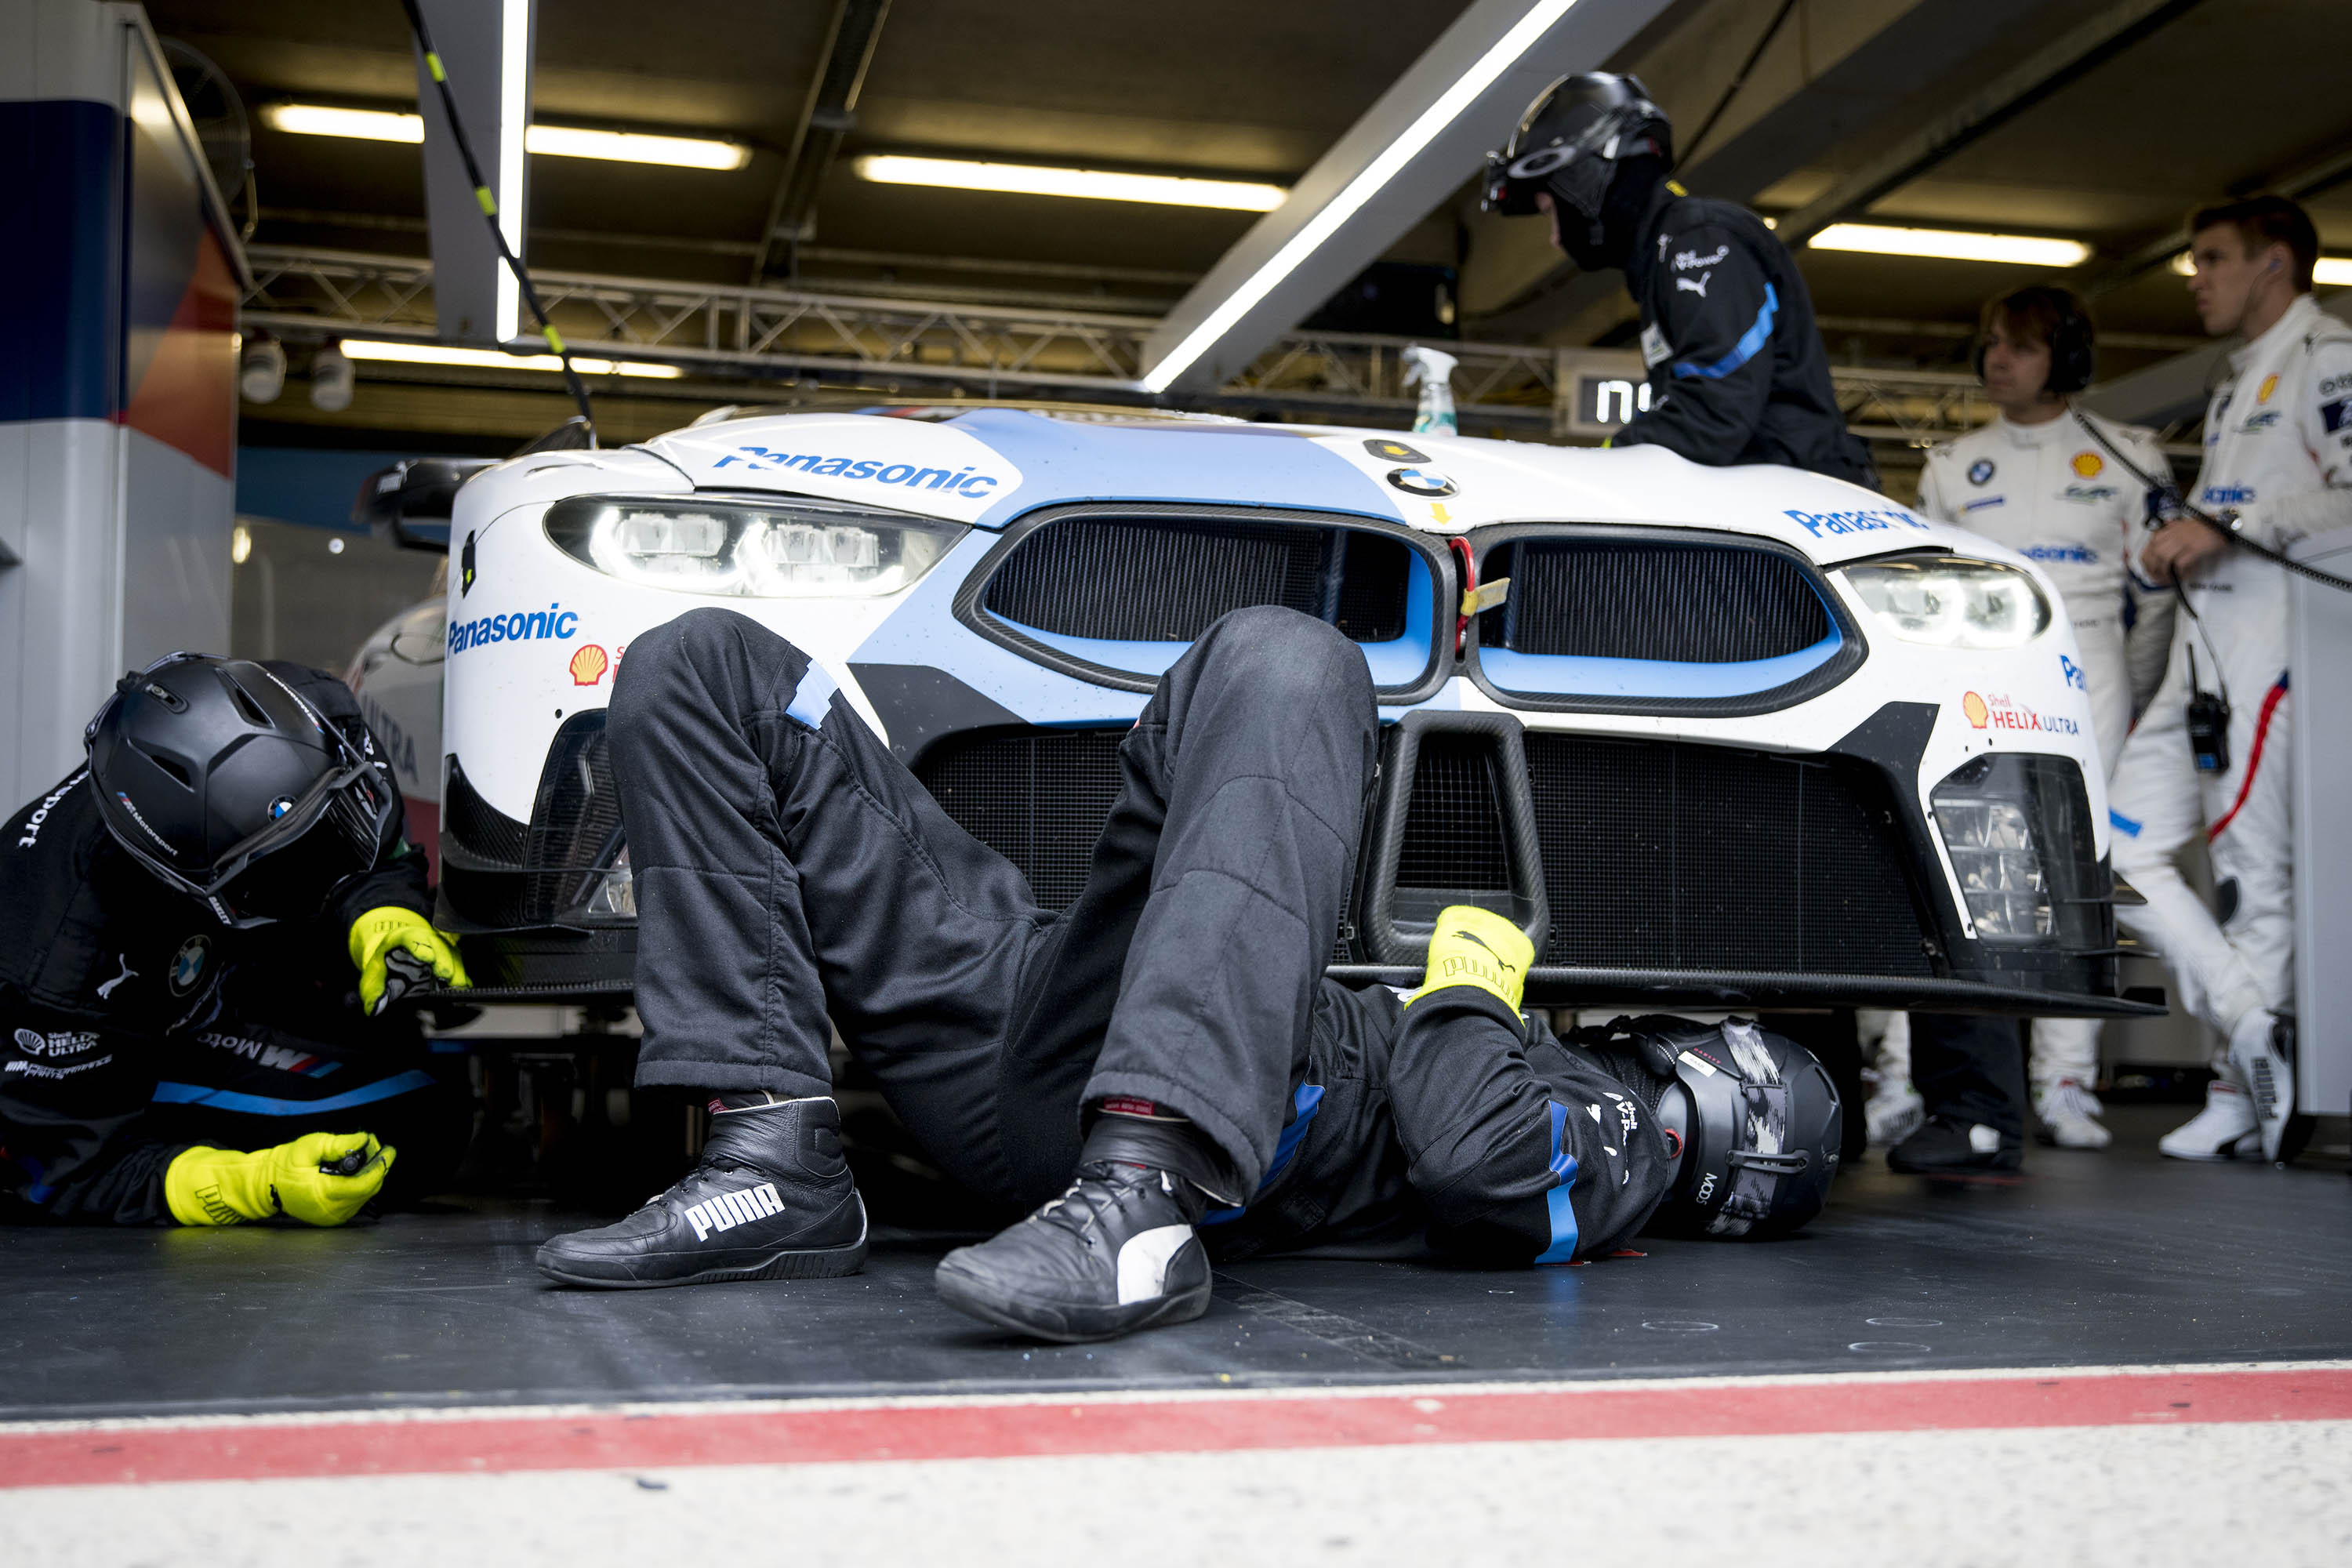 MRS_BMW_LeMans2019_02014